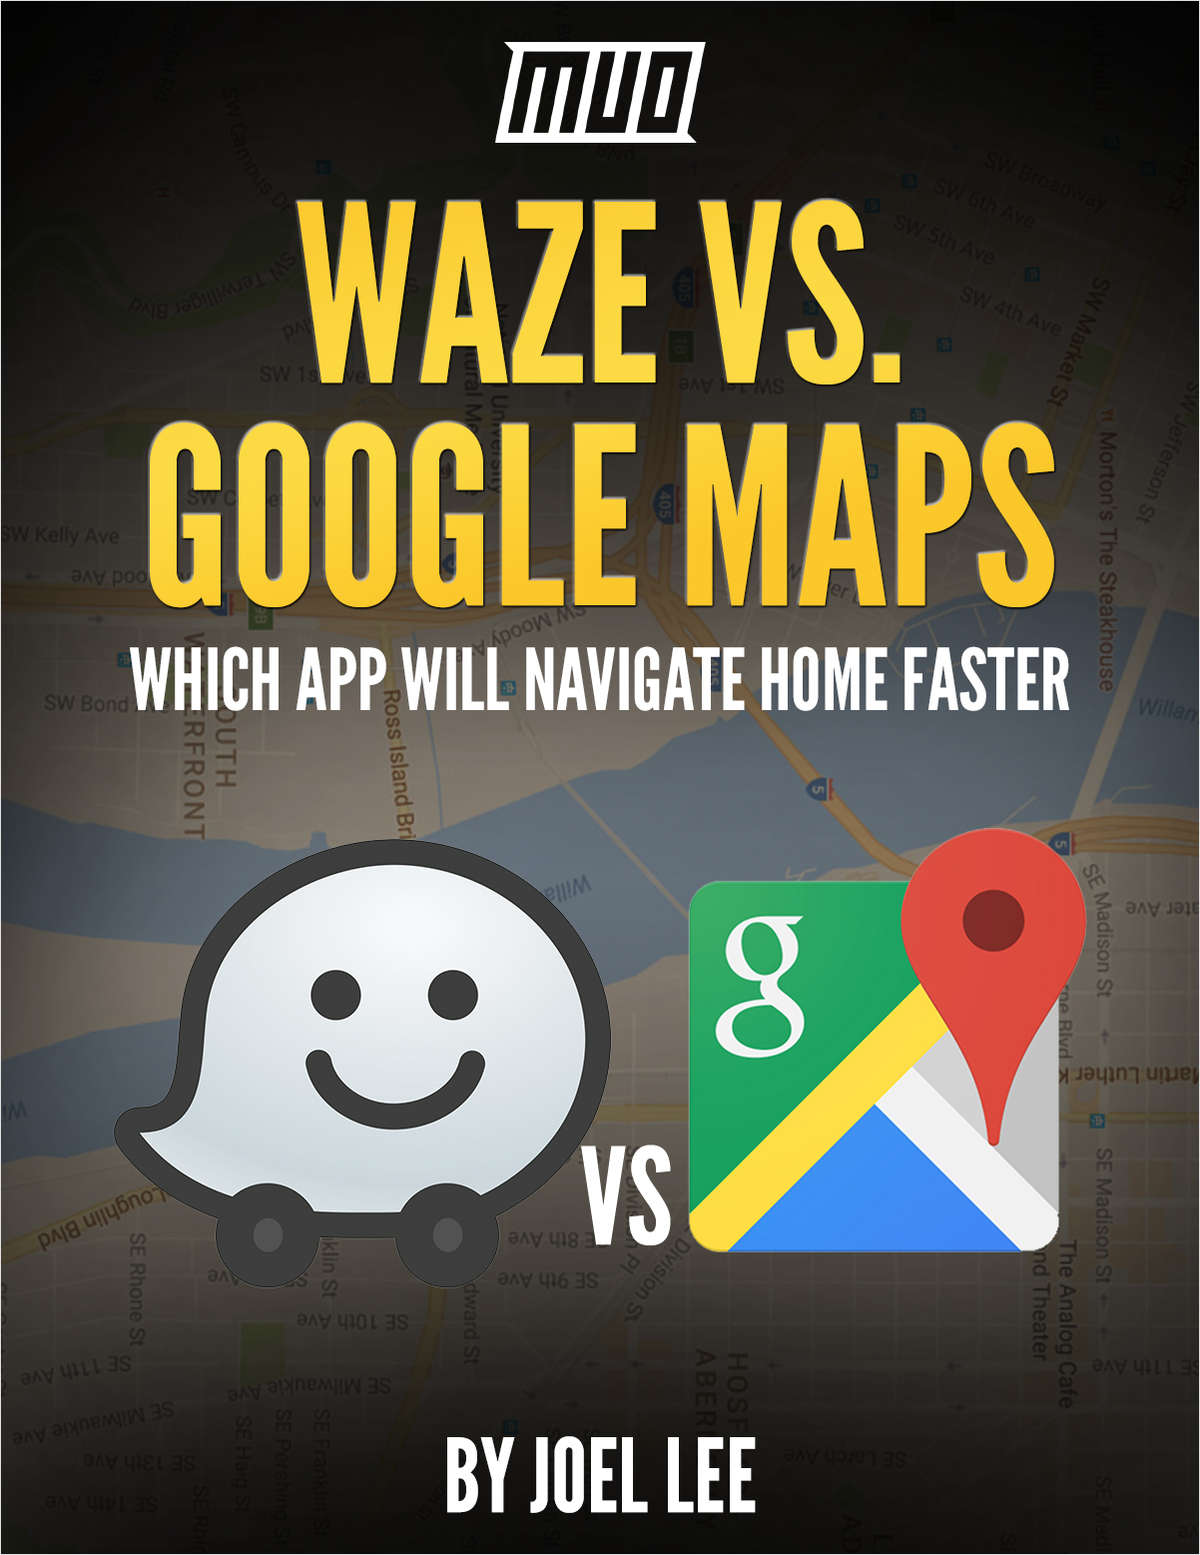 Waze vs. Google Maps - Which App Will Navigate Home Faster